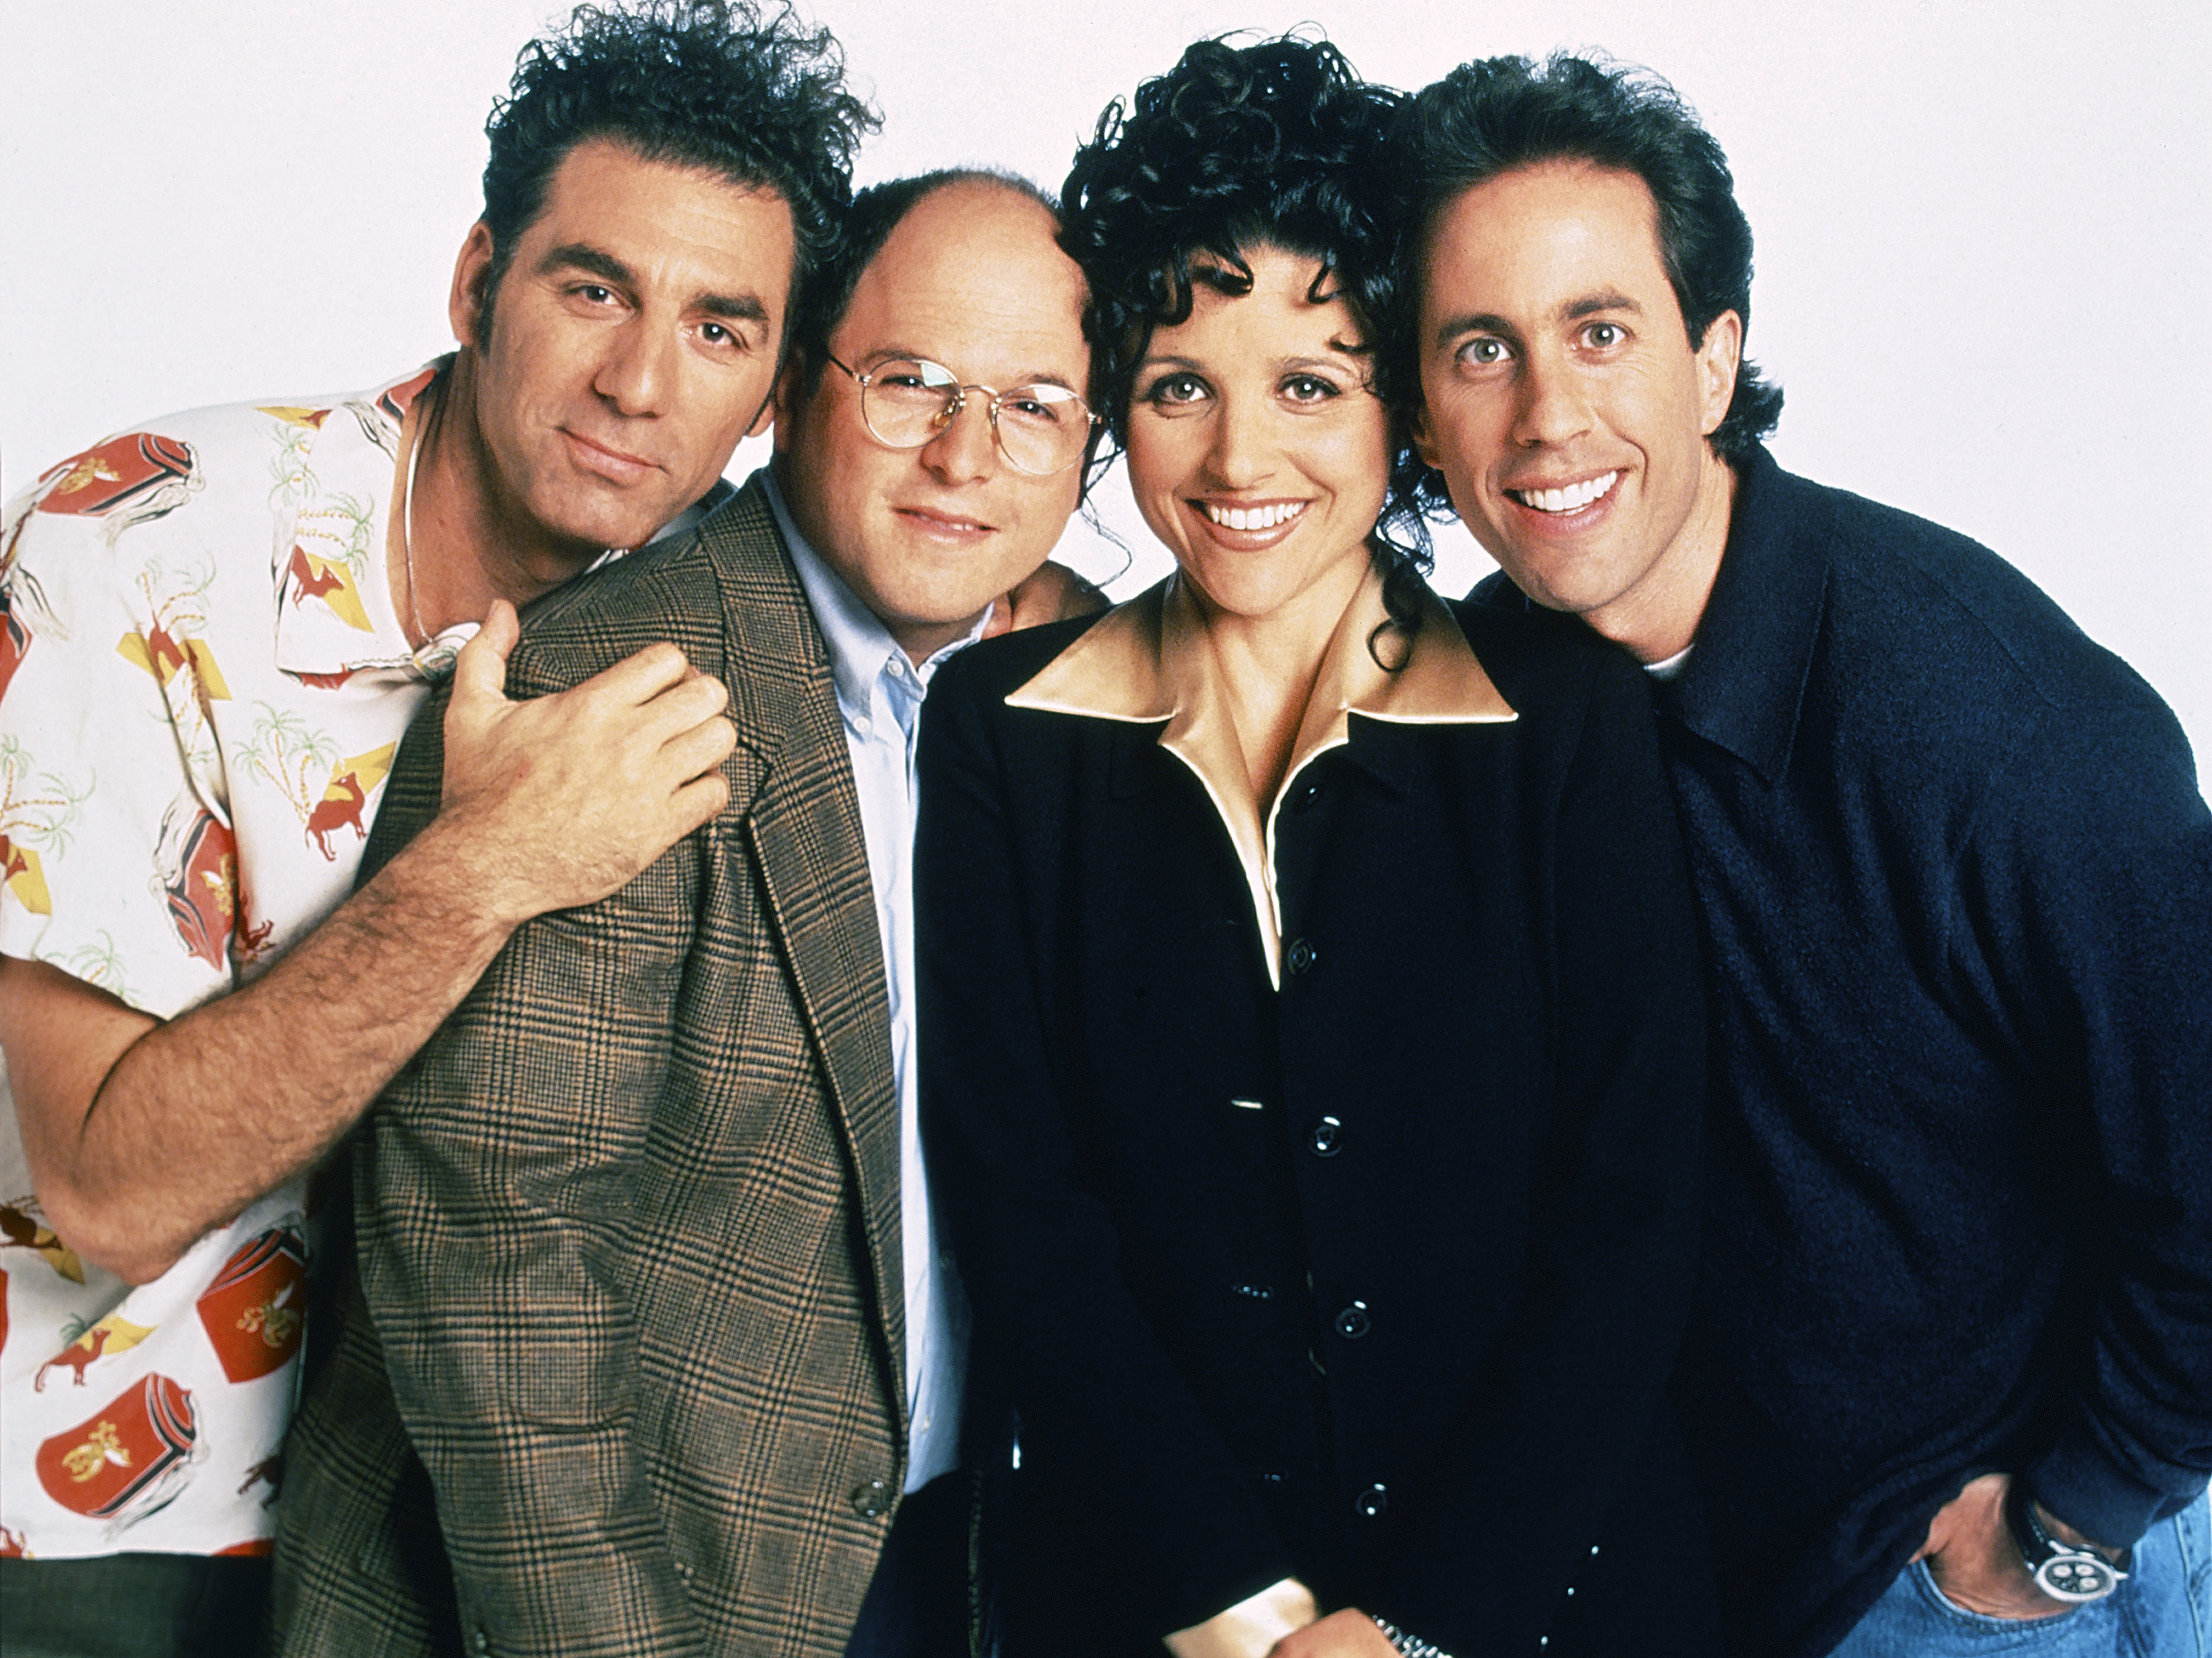 Cast of Seinfeld in potrait image.